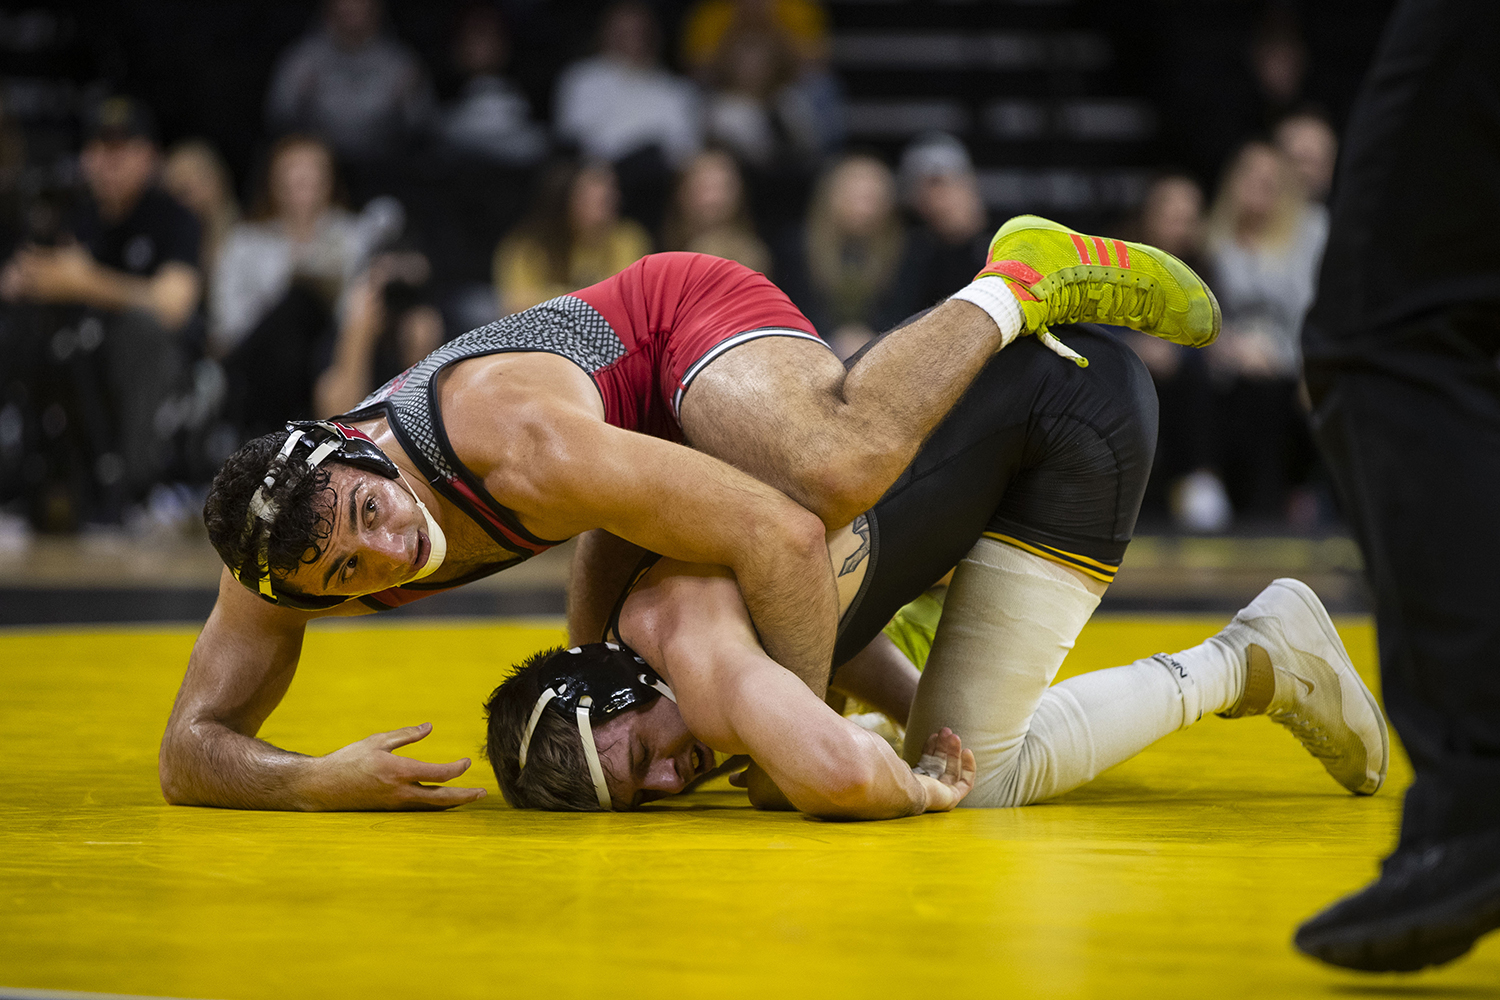 Iowa%27s+Mitch+Bowman+wrestles+Rutgers%27+Joseph+Grello+during+the+Iowa%2FRutgers+wrestling+meet+at+Carver-Hawkeye+Arena+on+Friday%2C+January+18%2C+2019.+Grello+defeated+Bowman%2C+3-0.+The+Hawkeyes+defeated+the+Scarlet+Knights%2C+30-6.+